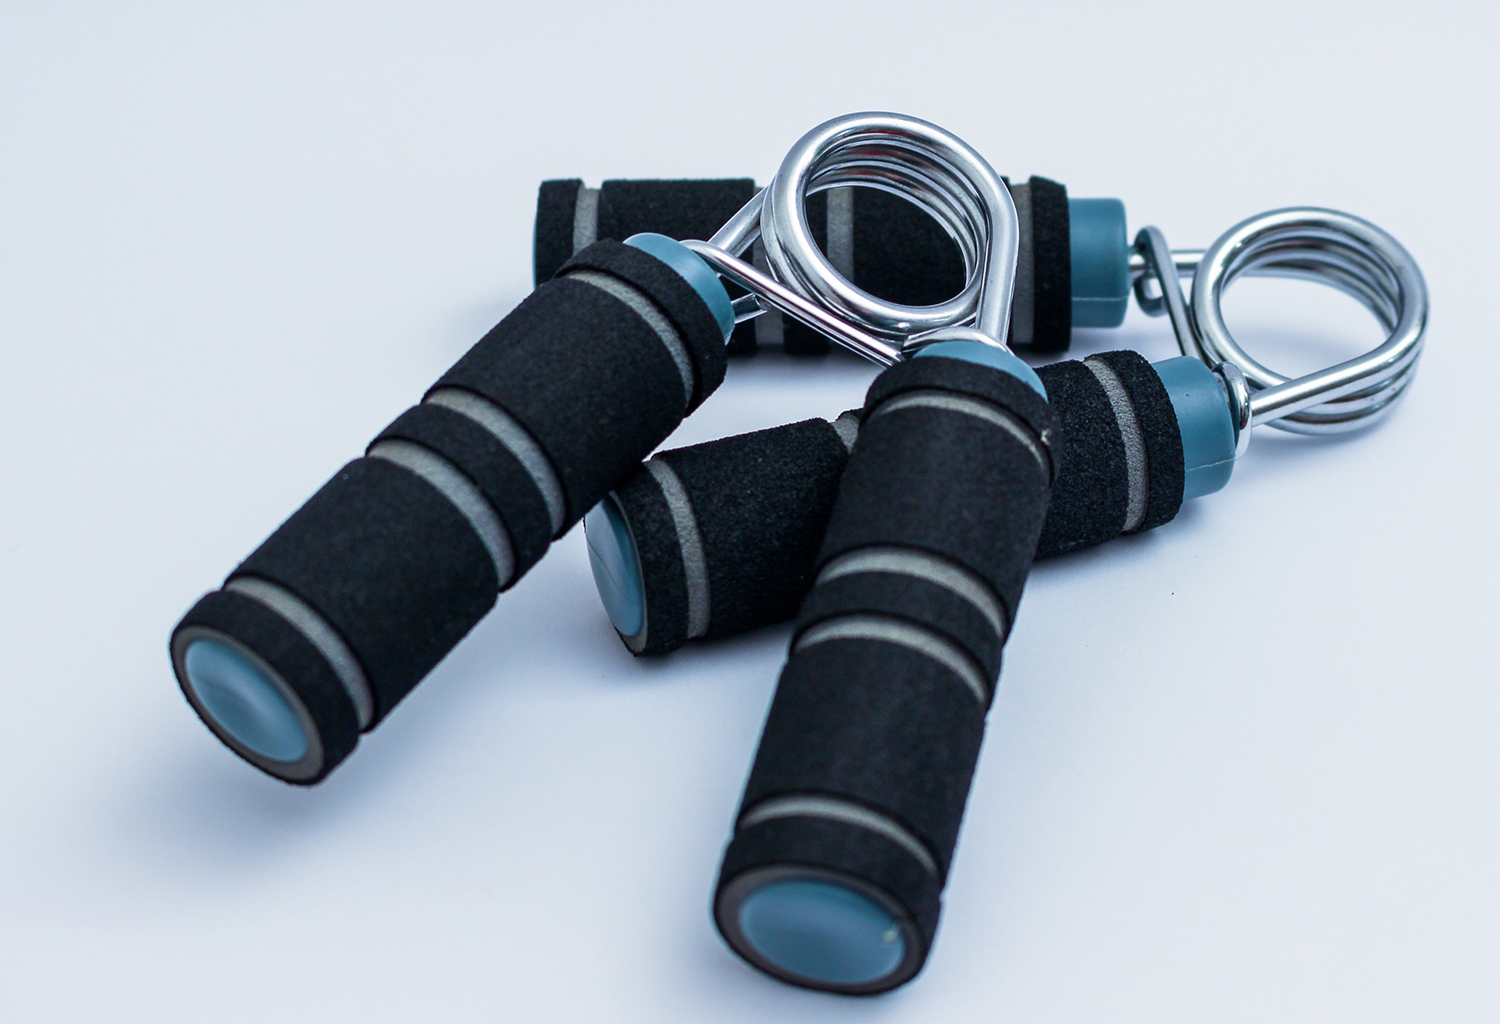 Exercise Equipment To Strengthen Your Hand Grip